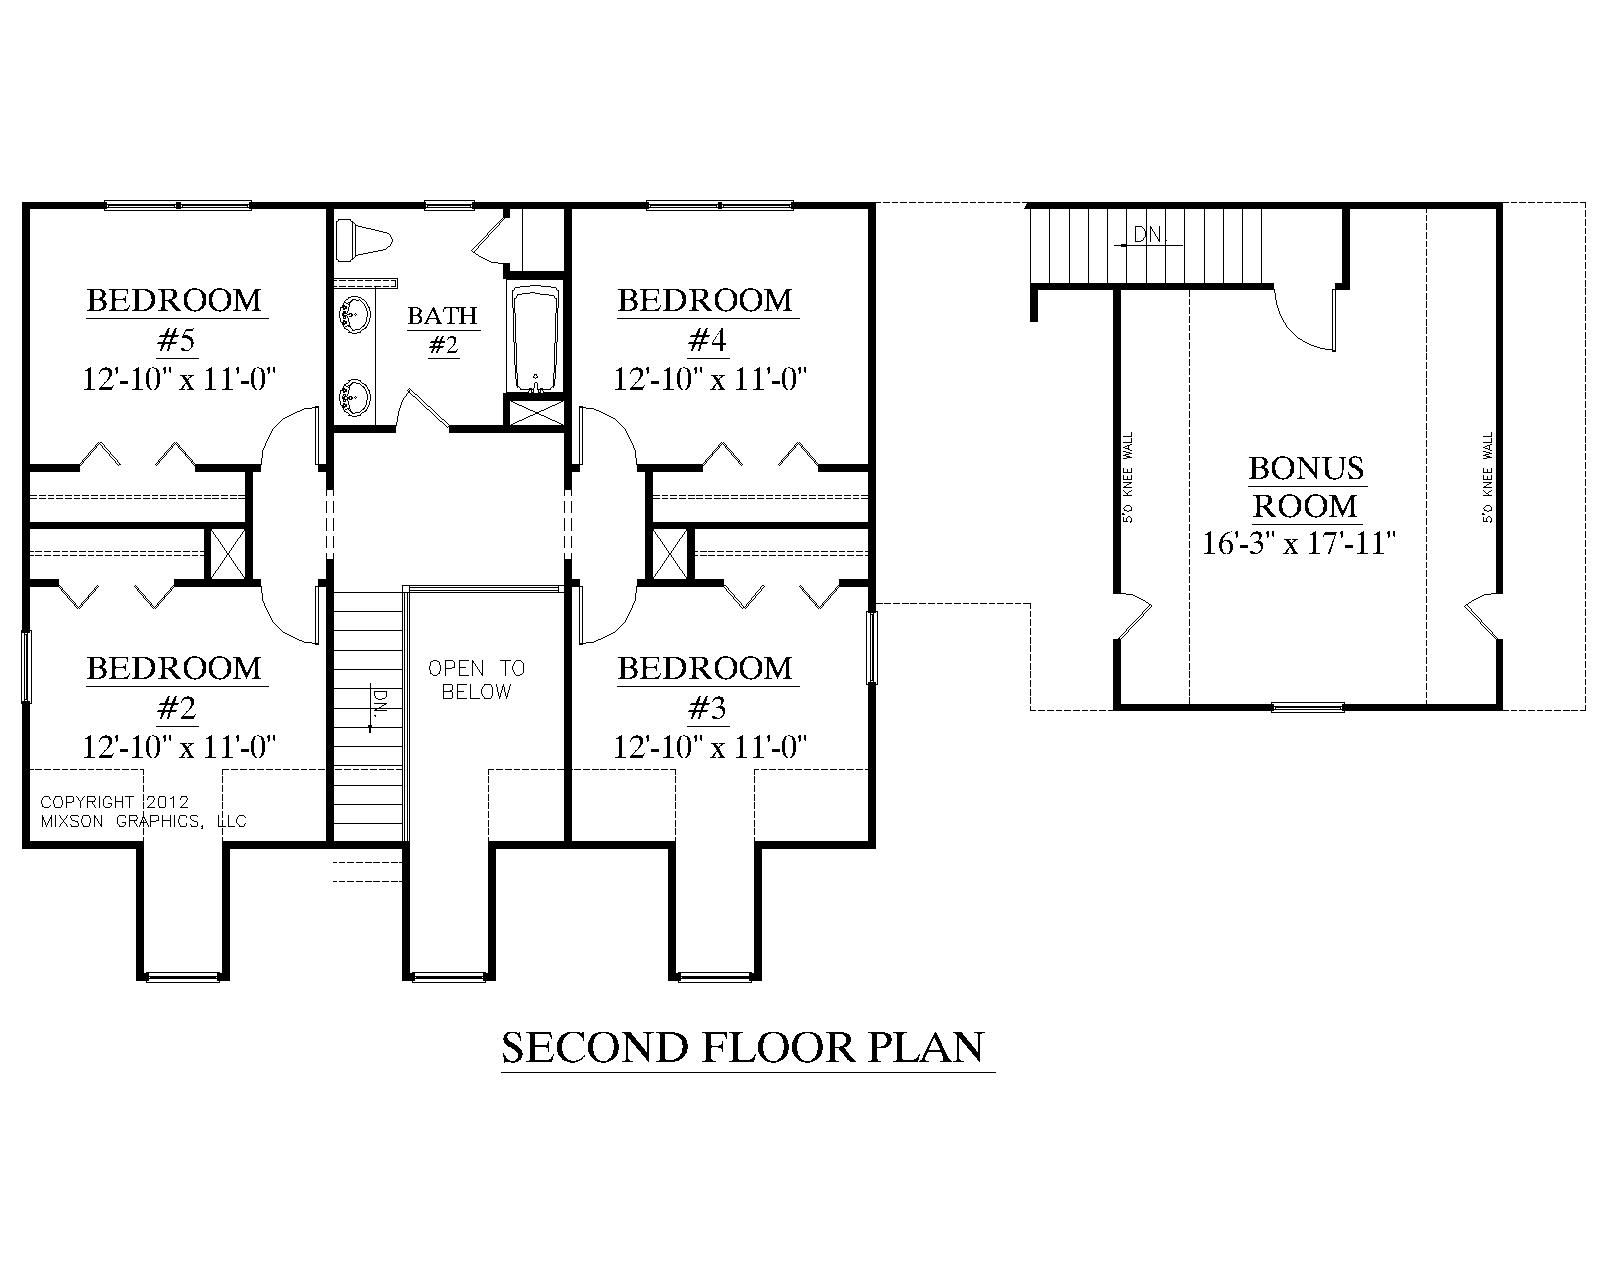 House plan 2341 a montgomery a second floor plan for Second story floor plan